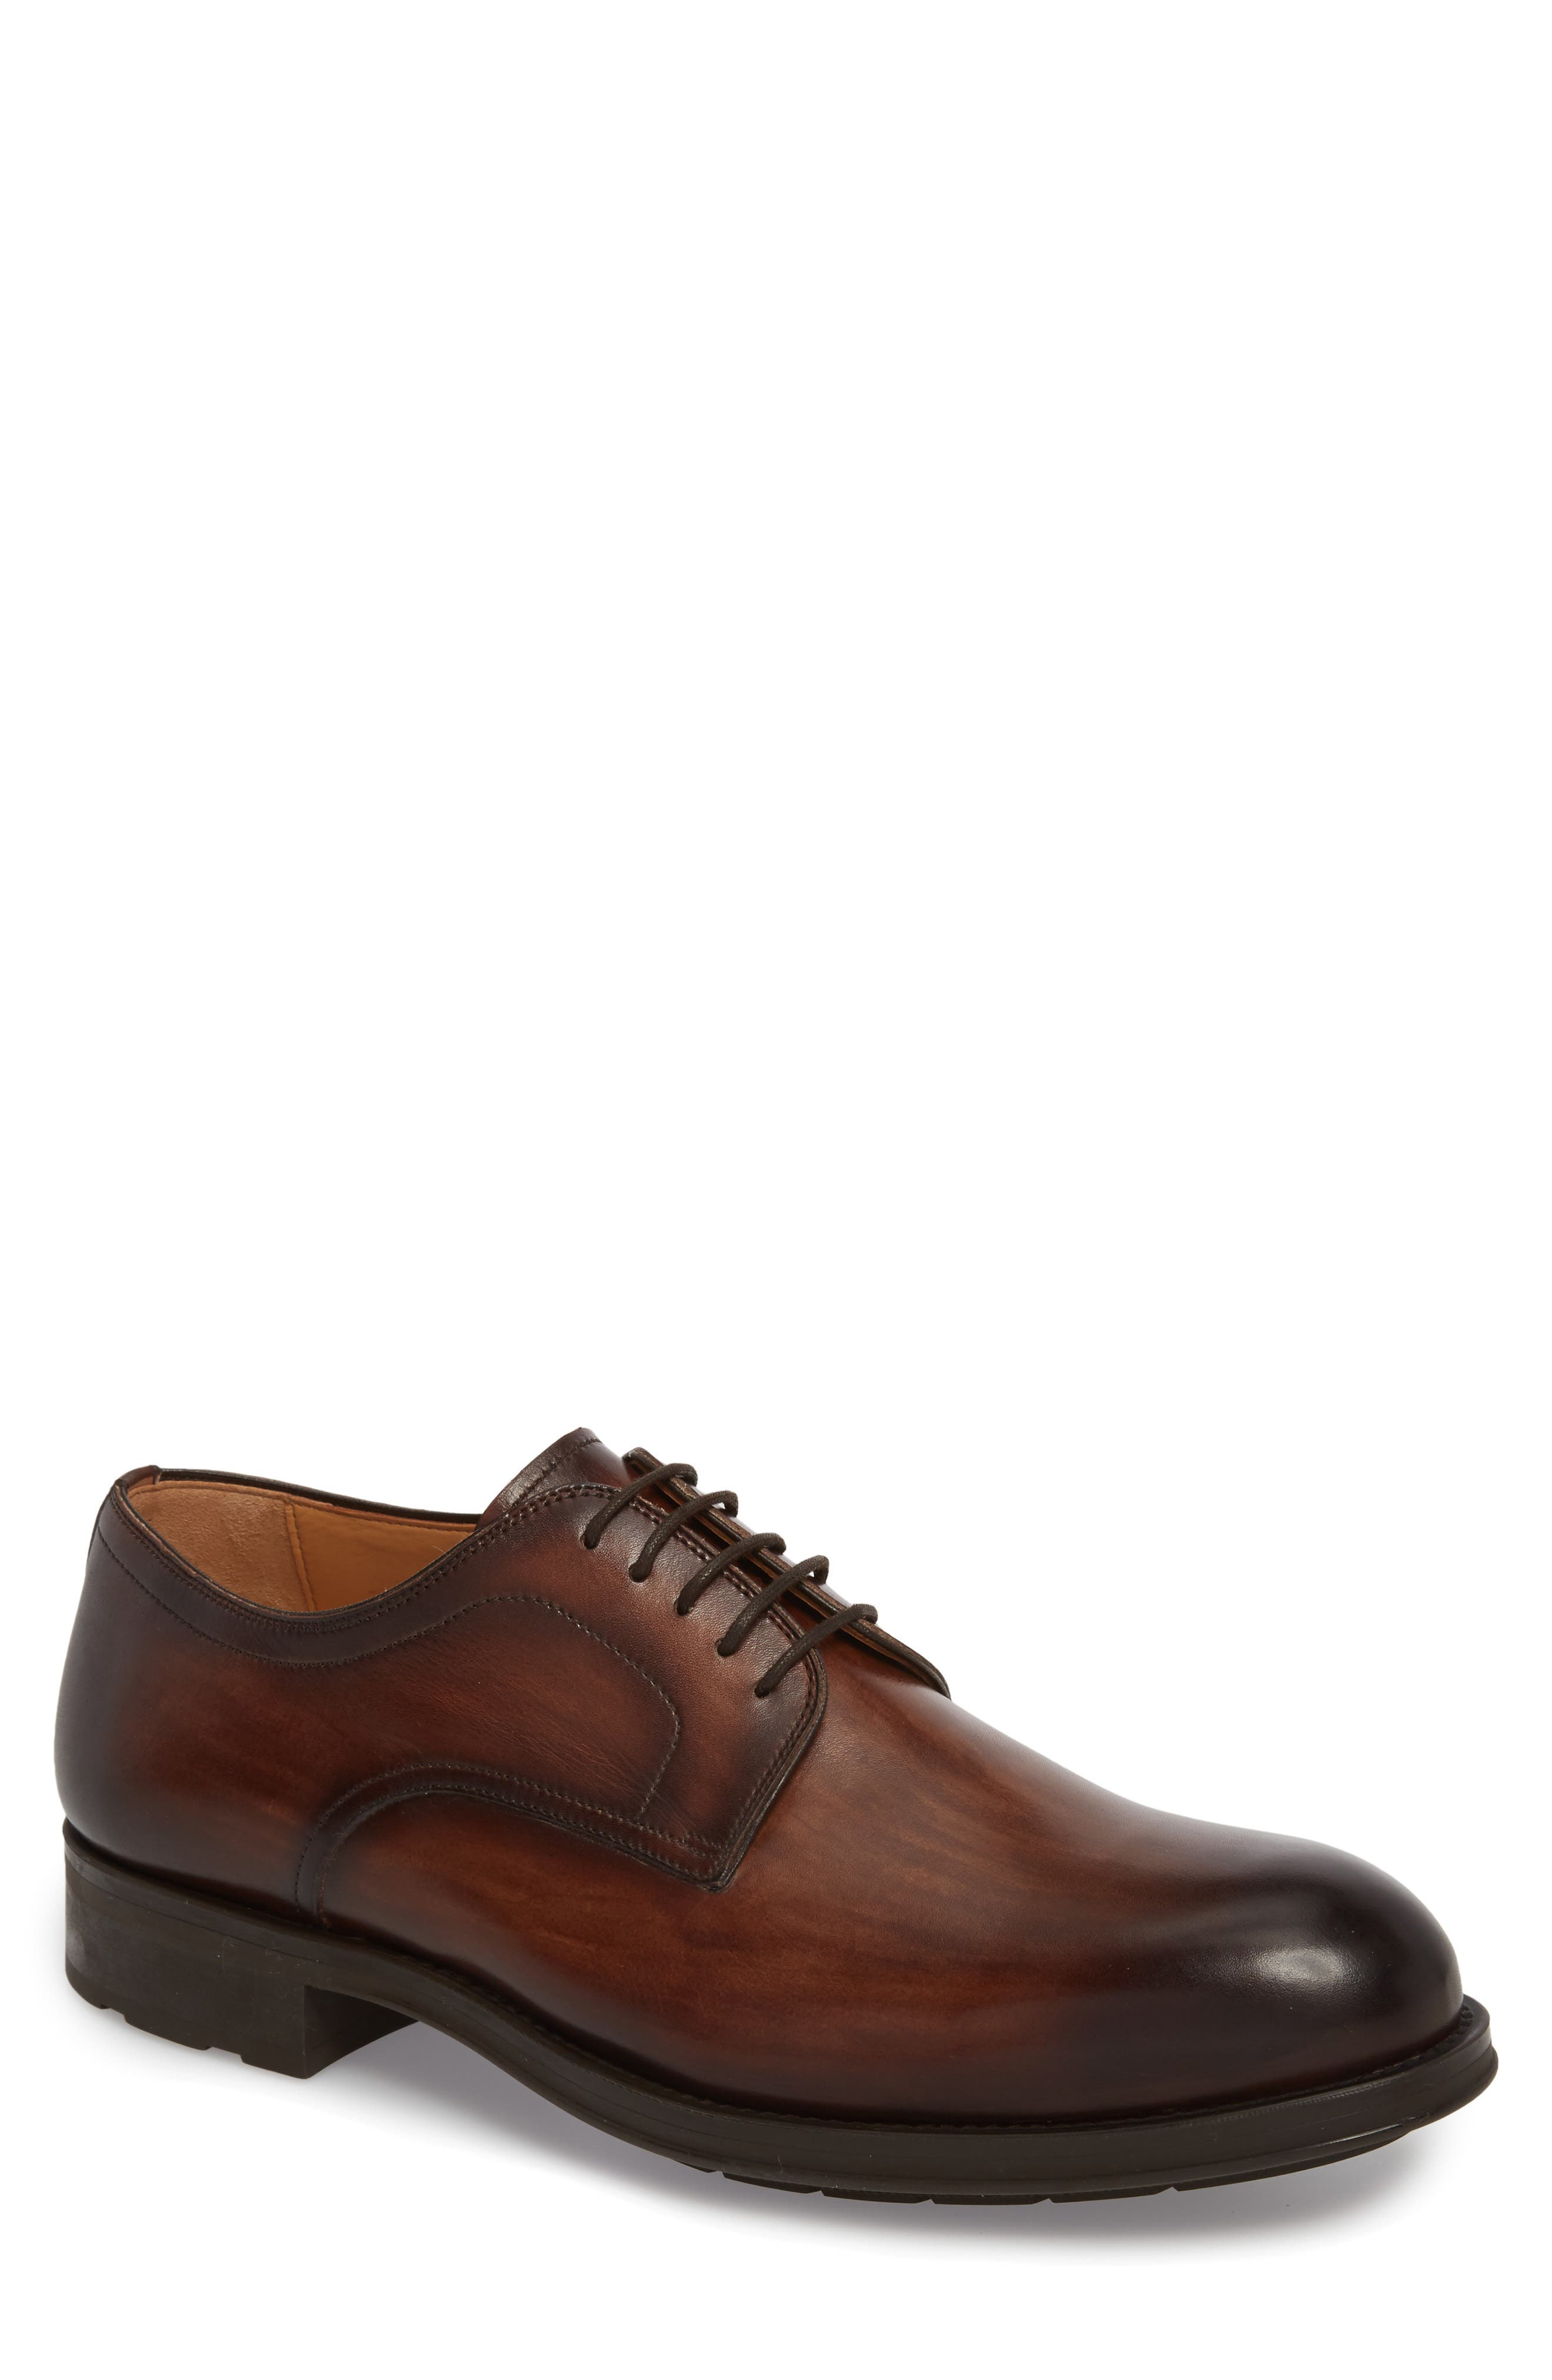 Solano Plain Toe Derby,                         Main,                         color, BROWN LEATHER